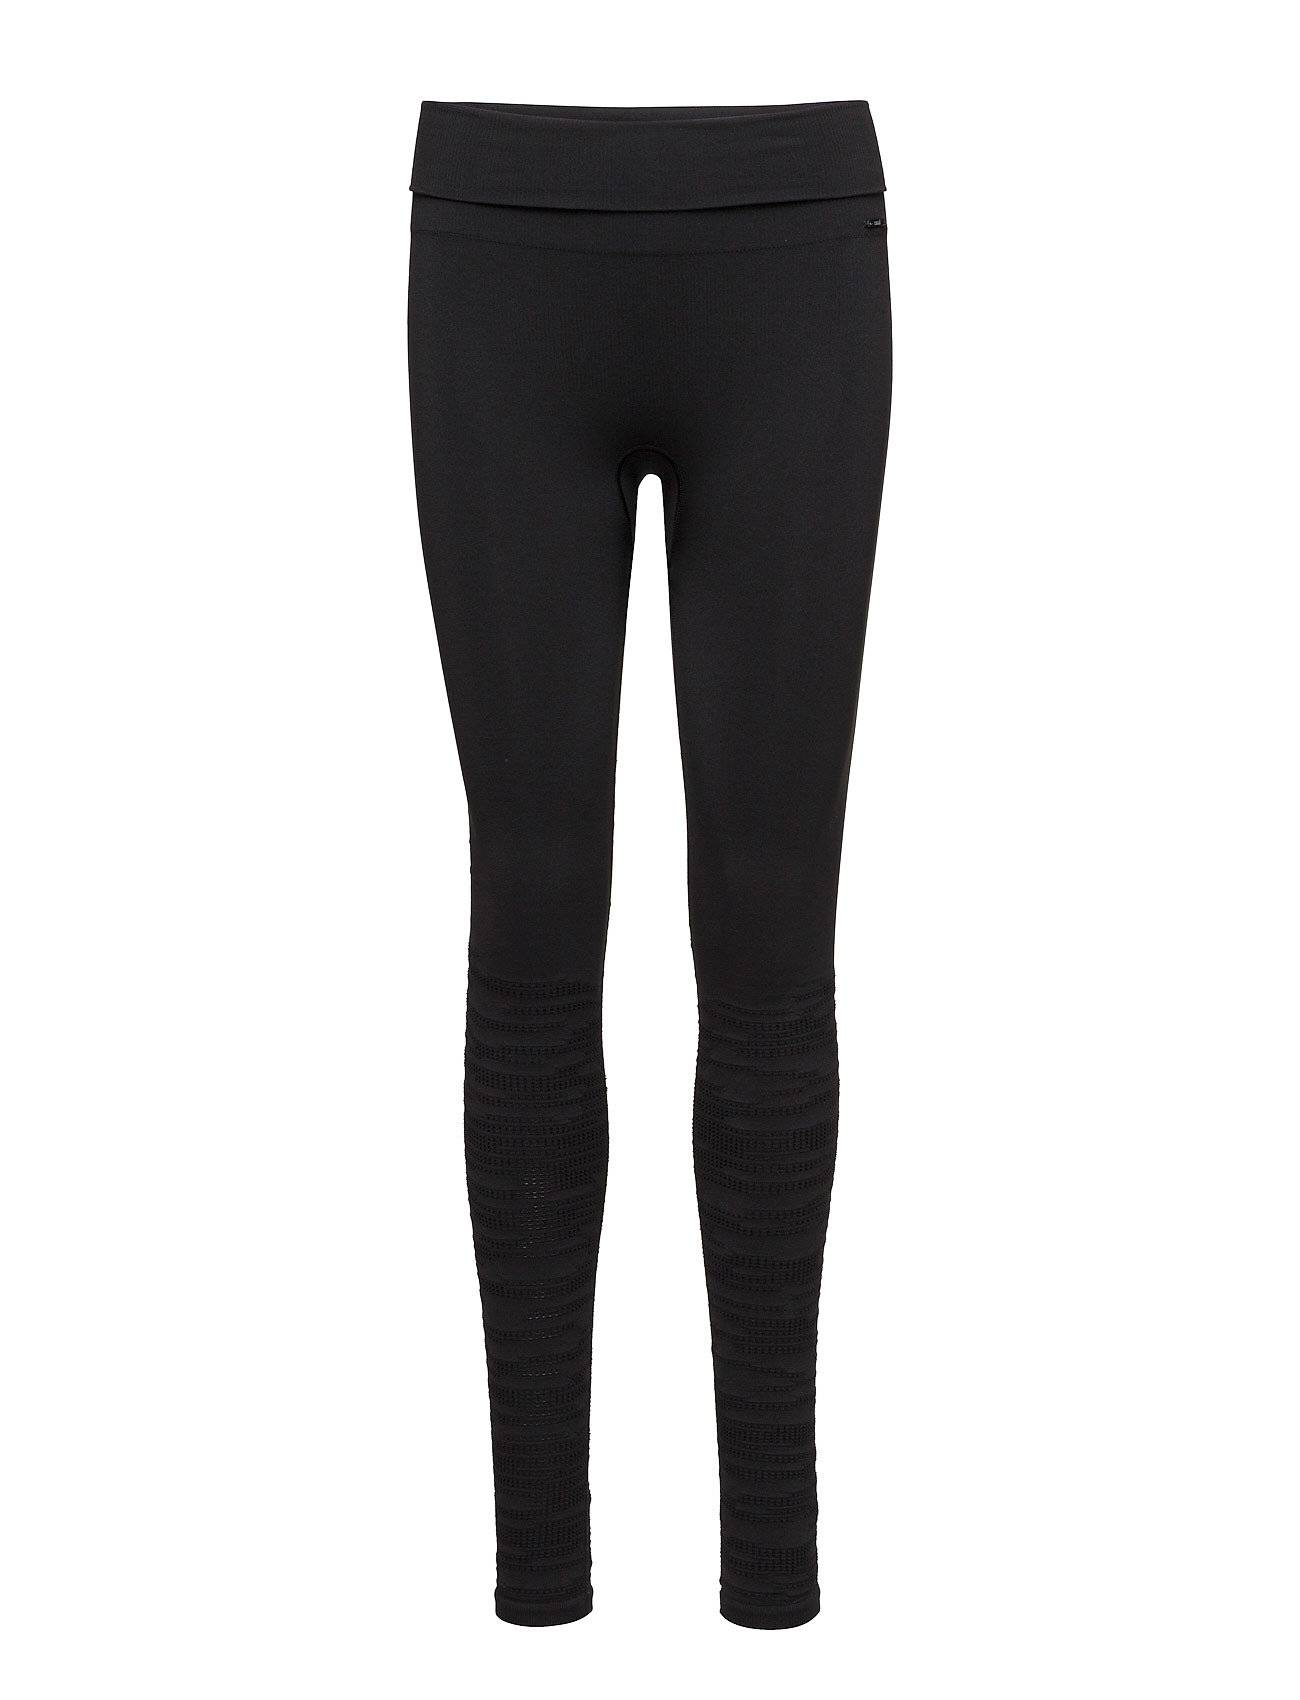 Casall Knitted Brushed Tights